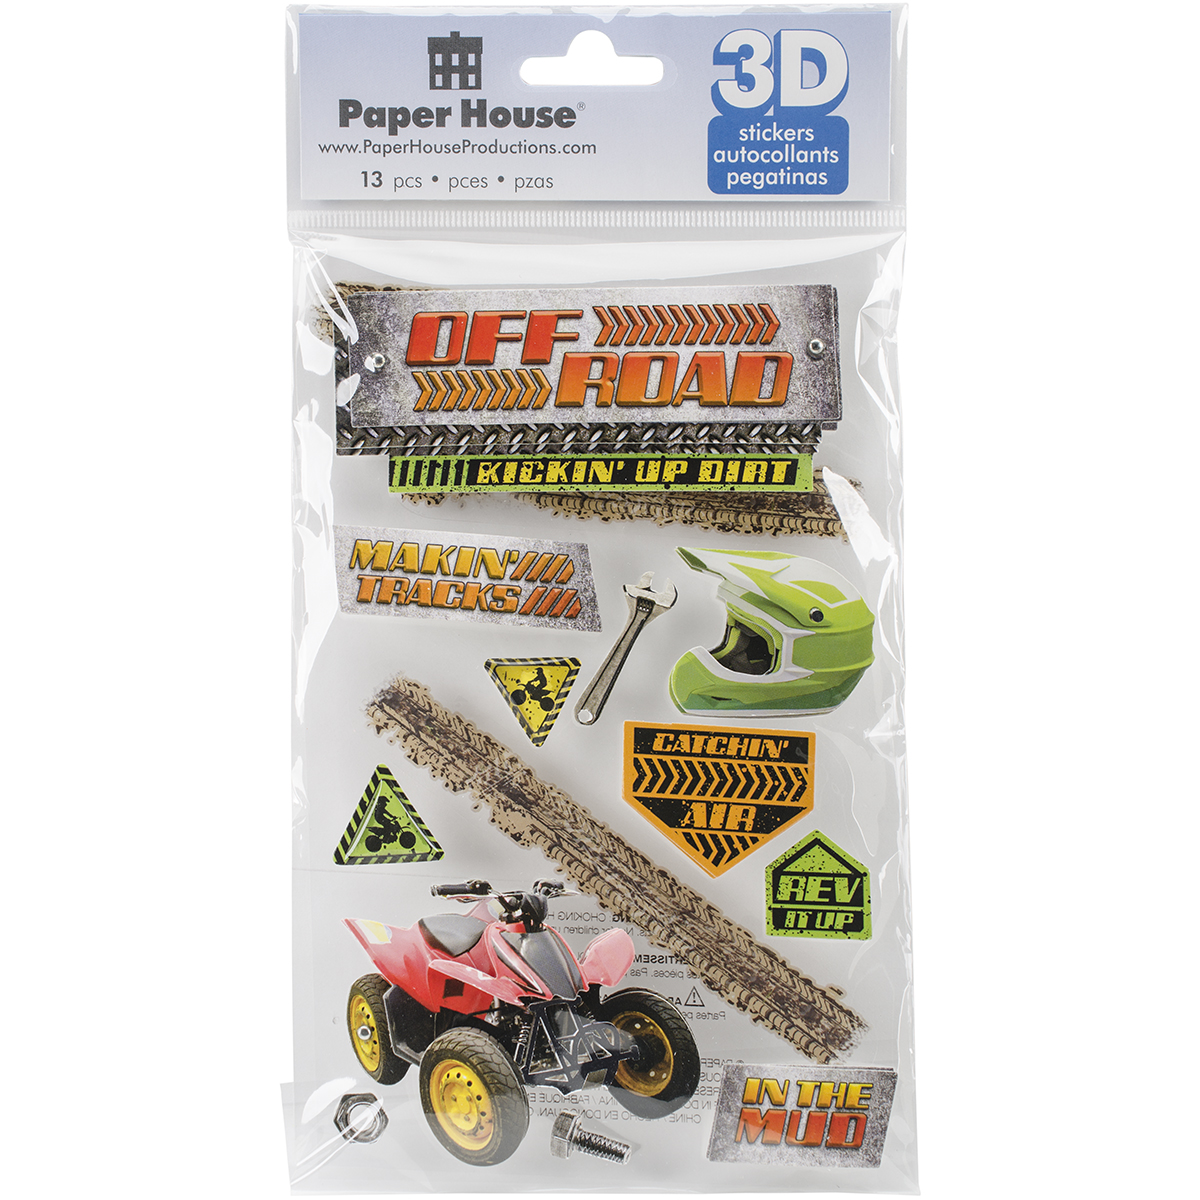 OFF ROAD  -3D STICKERS